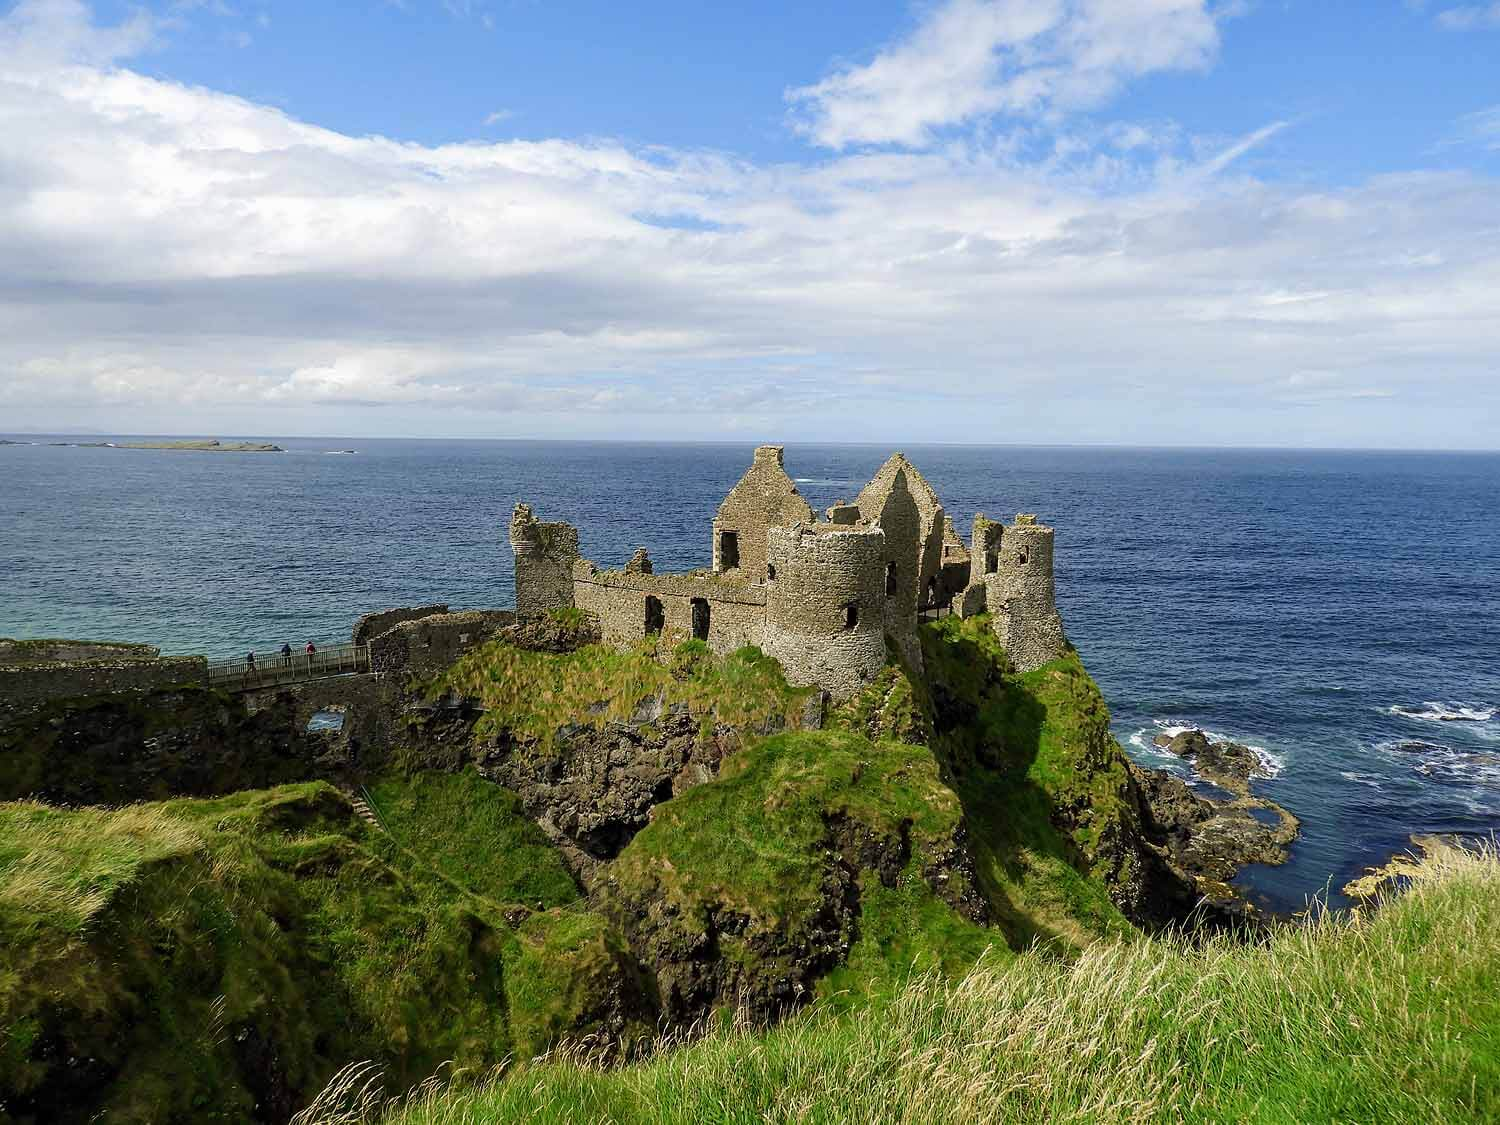 northern-ireland-coast-dunluce-castle-ruins.jpg